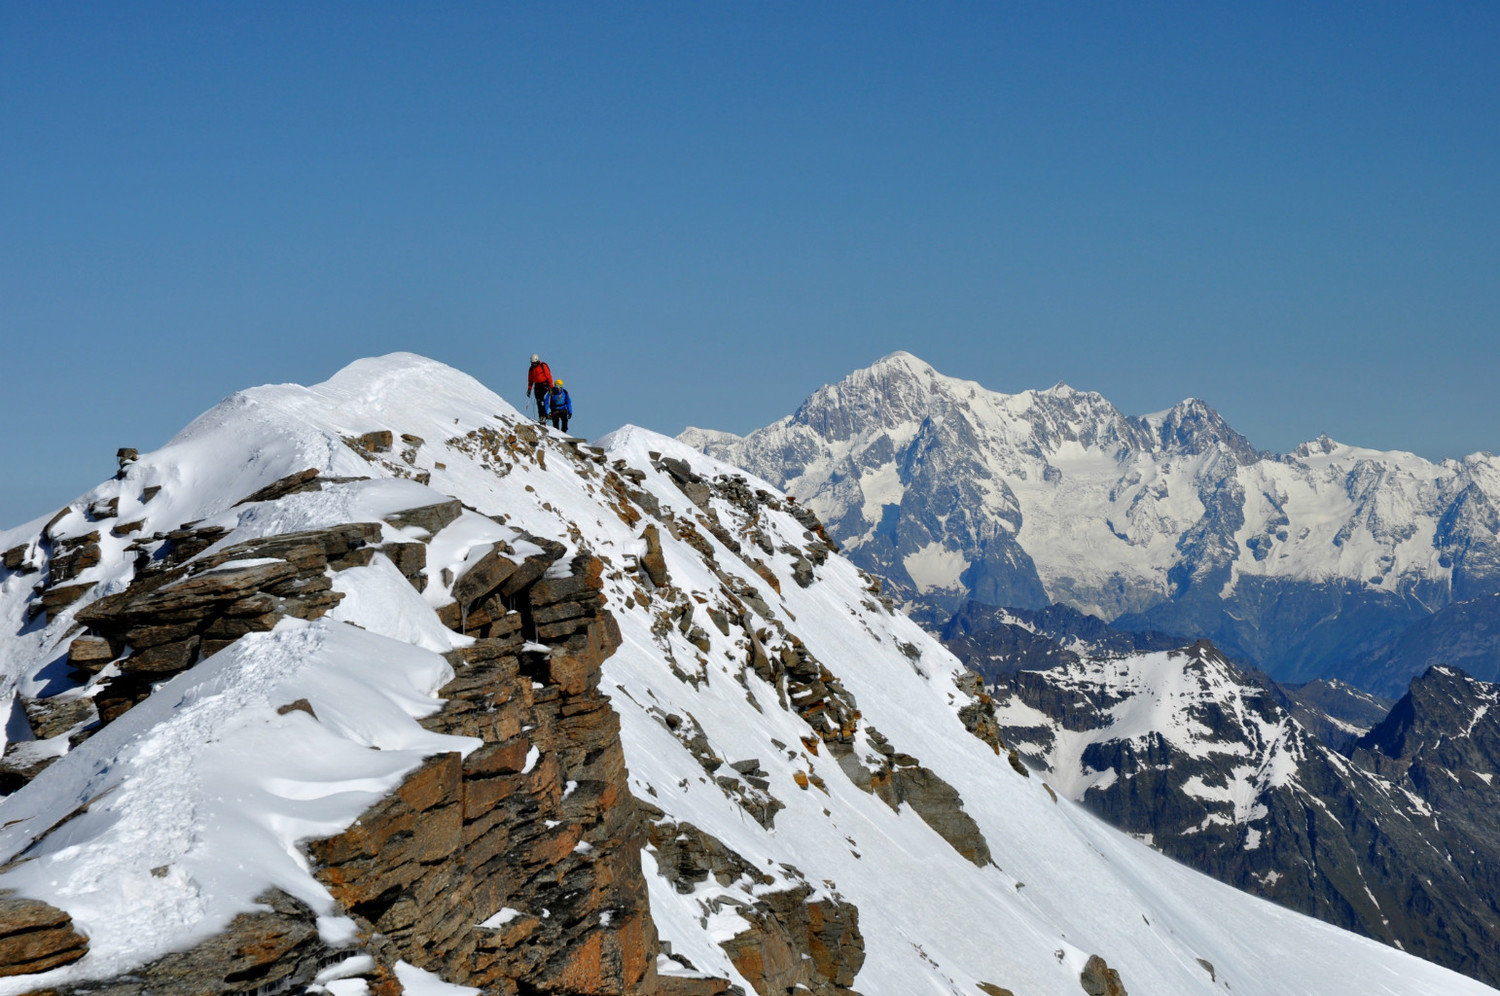 Gran Paradiso - Via normale : view towards the main summit and the Mont-Blanc